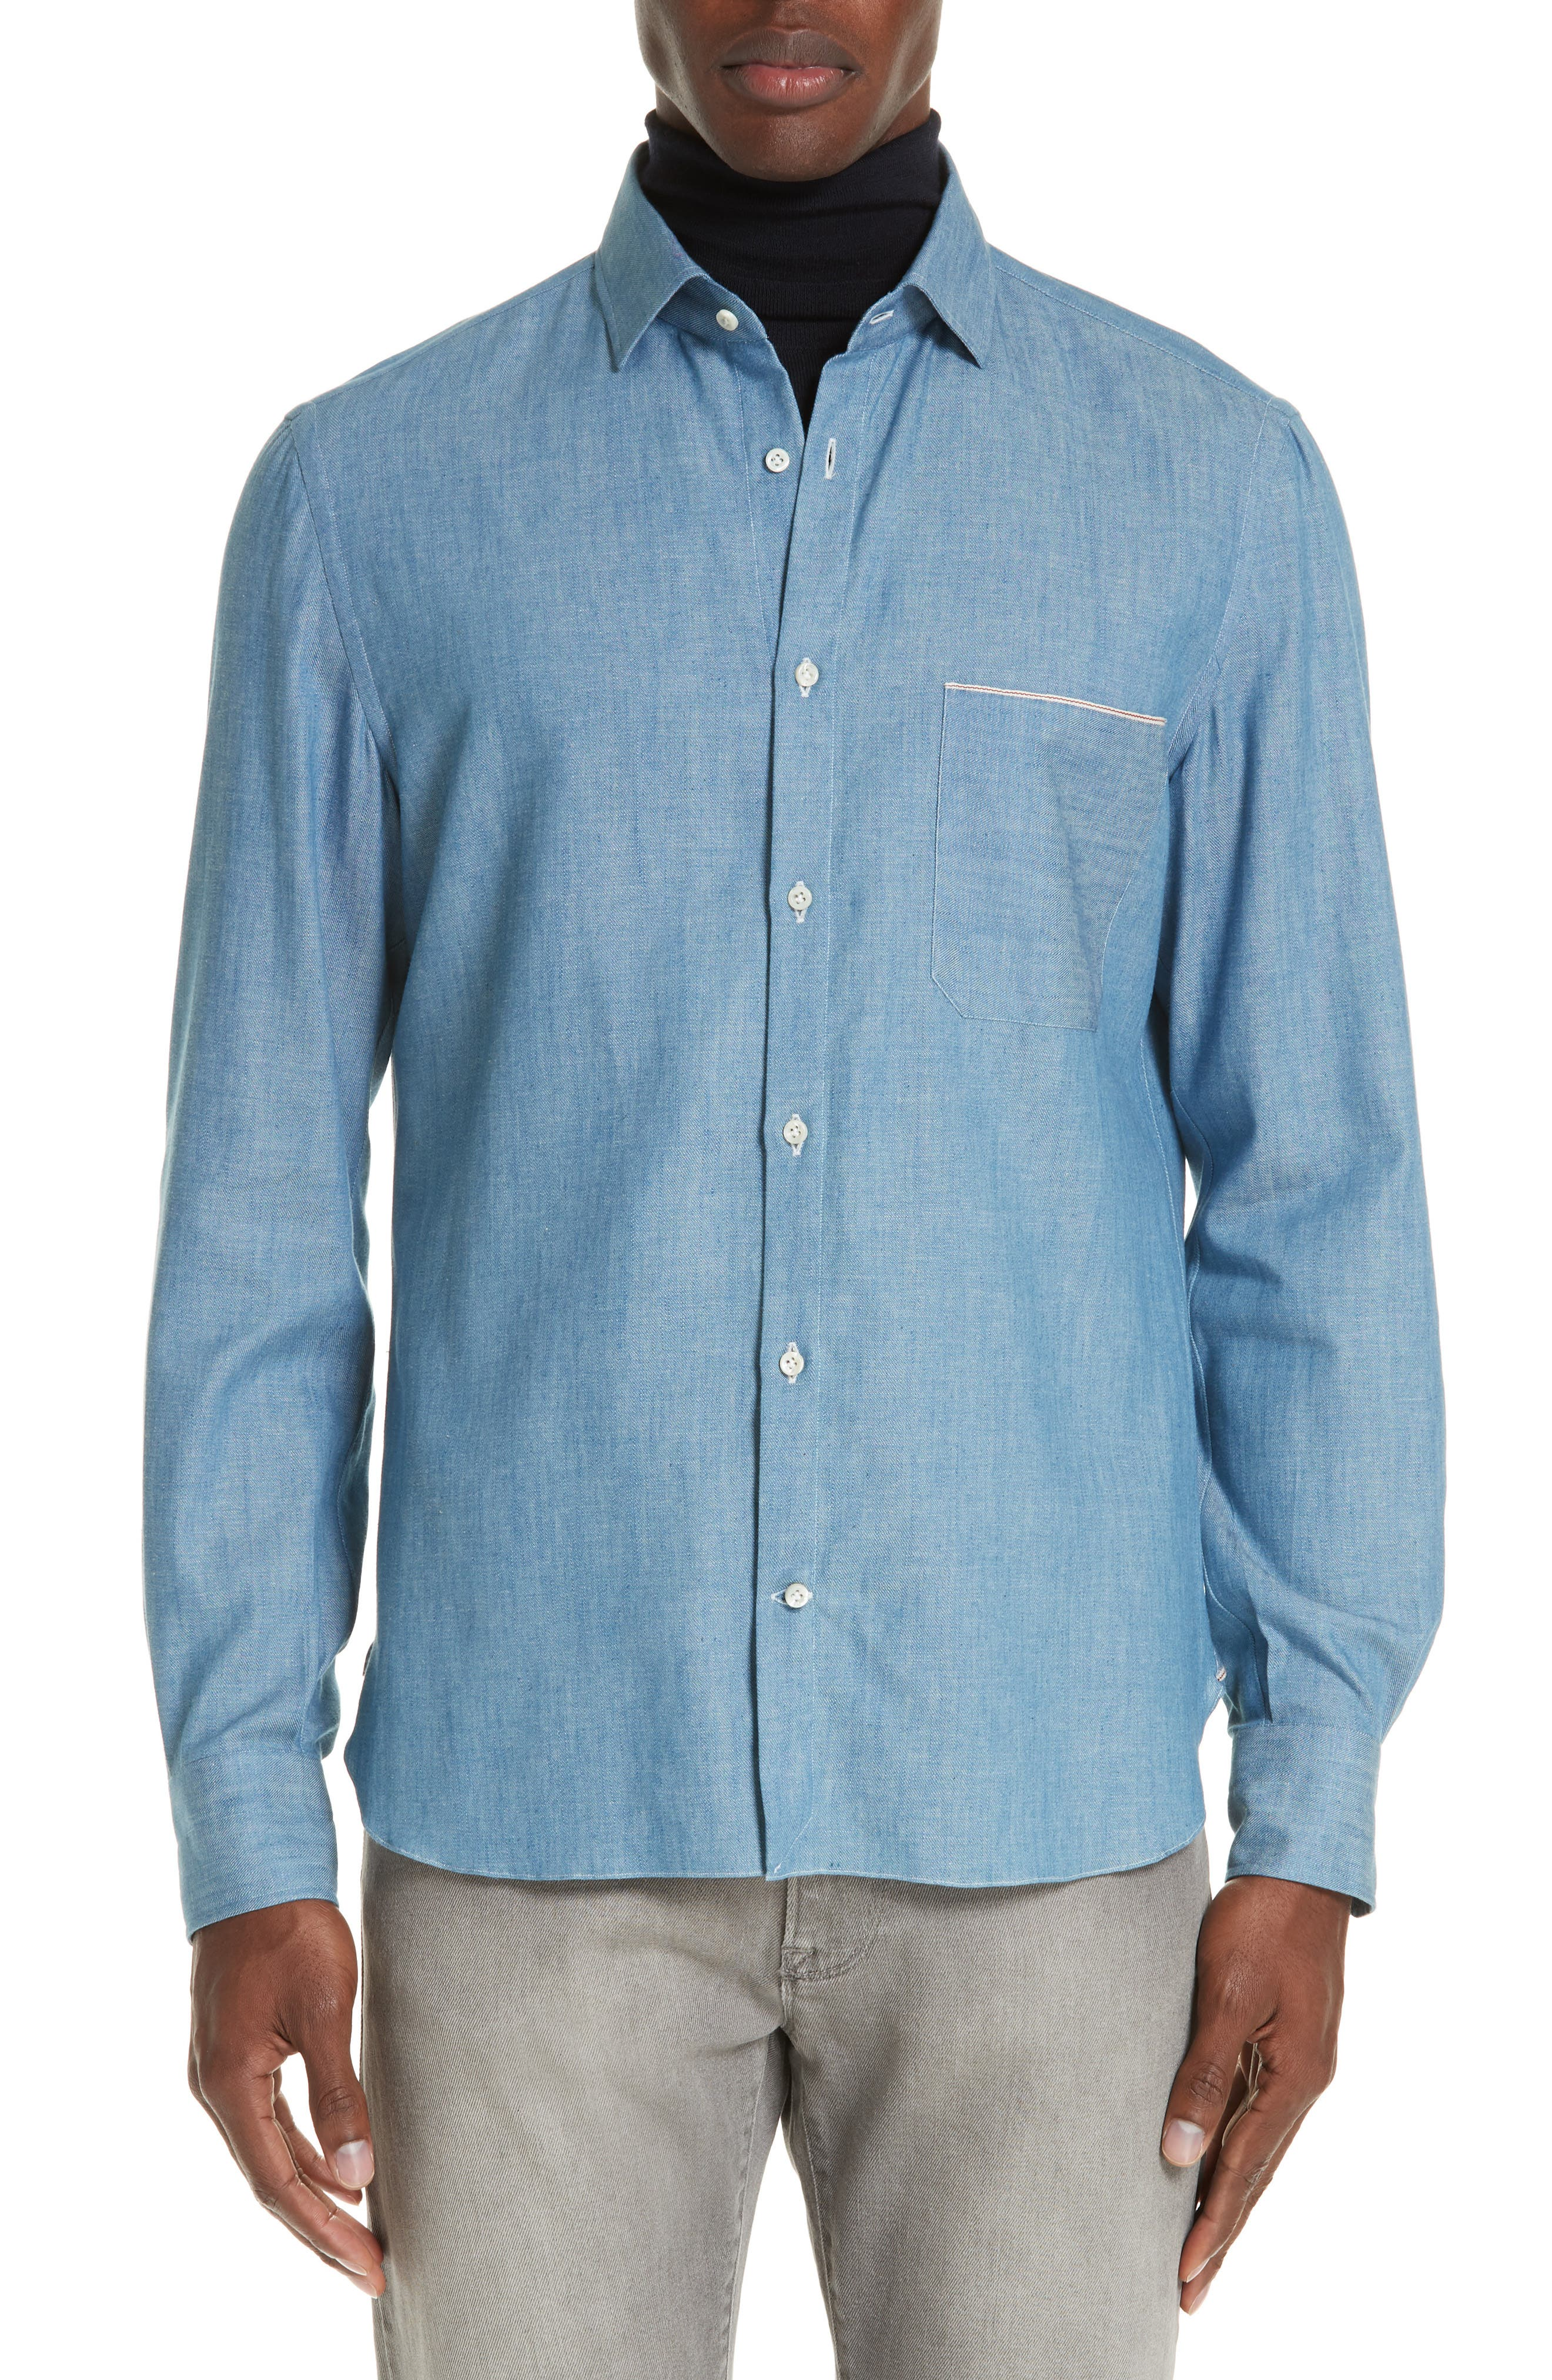 EIDOS Trim Fit Solid Sport Shirt in Denim